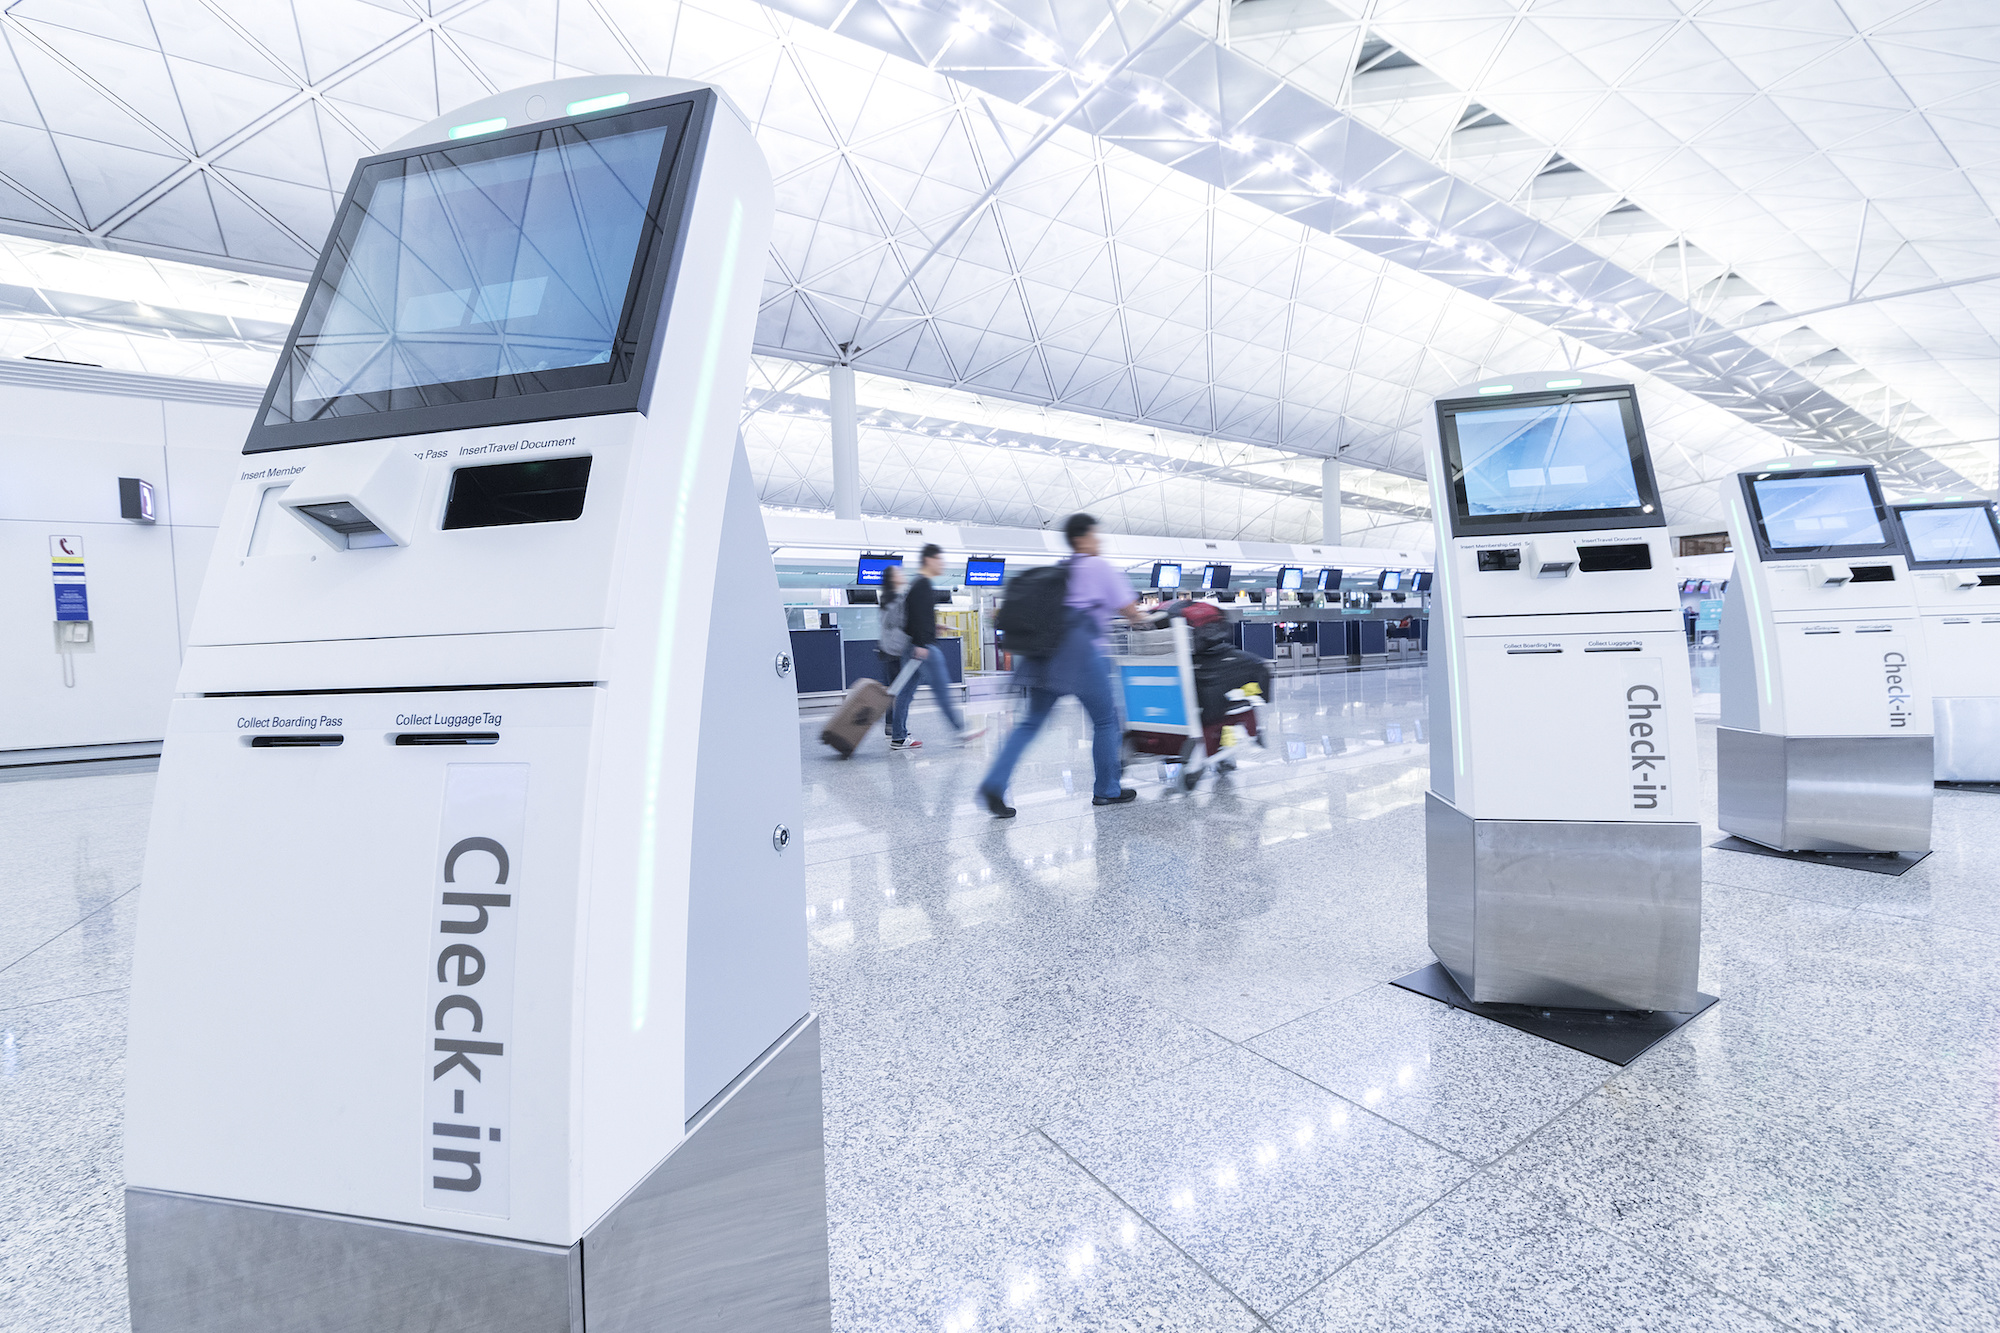 Self check-in kiosks at airport